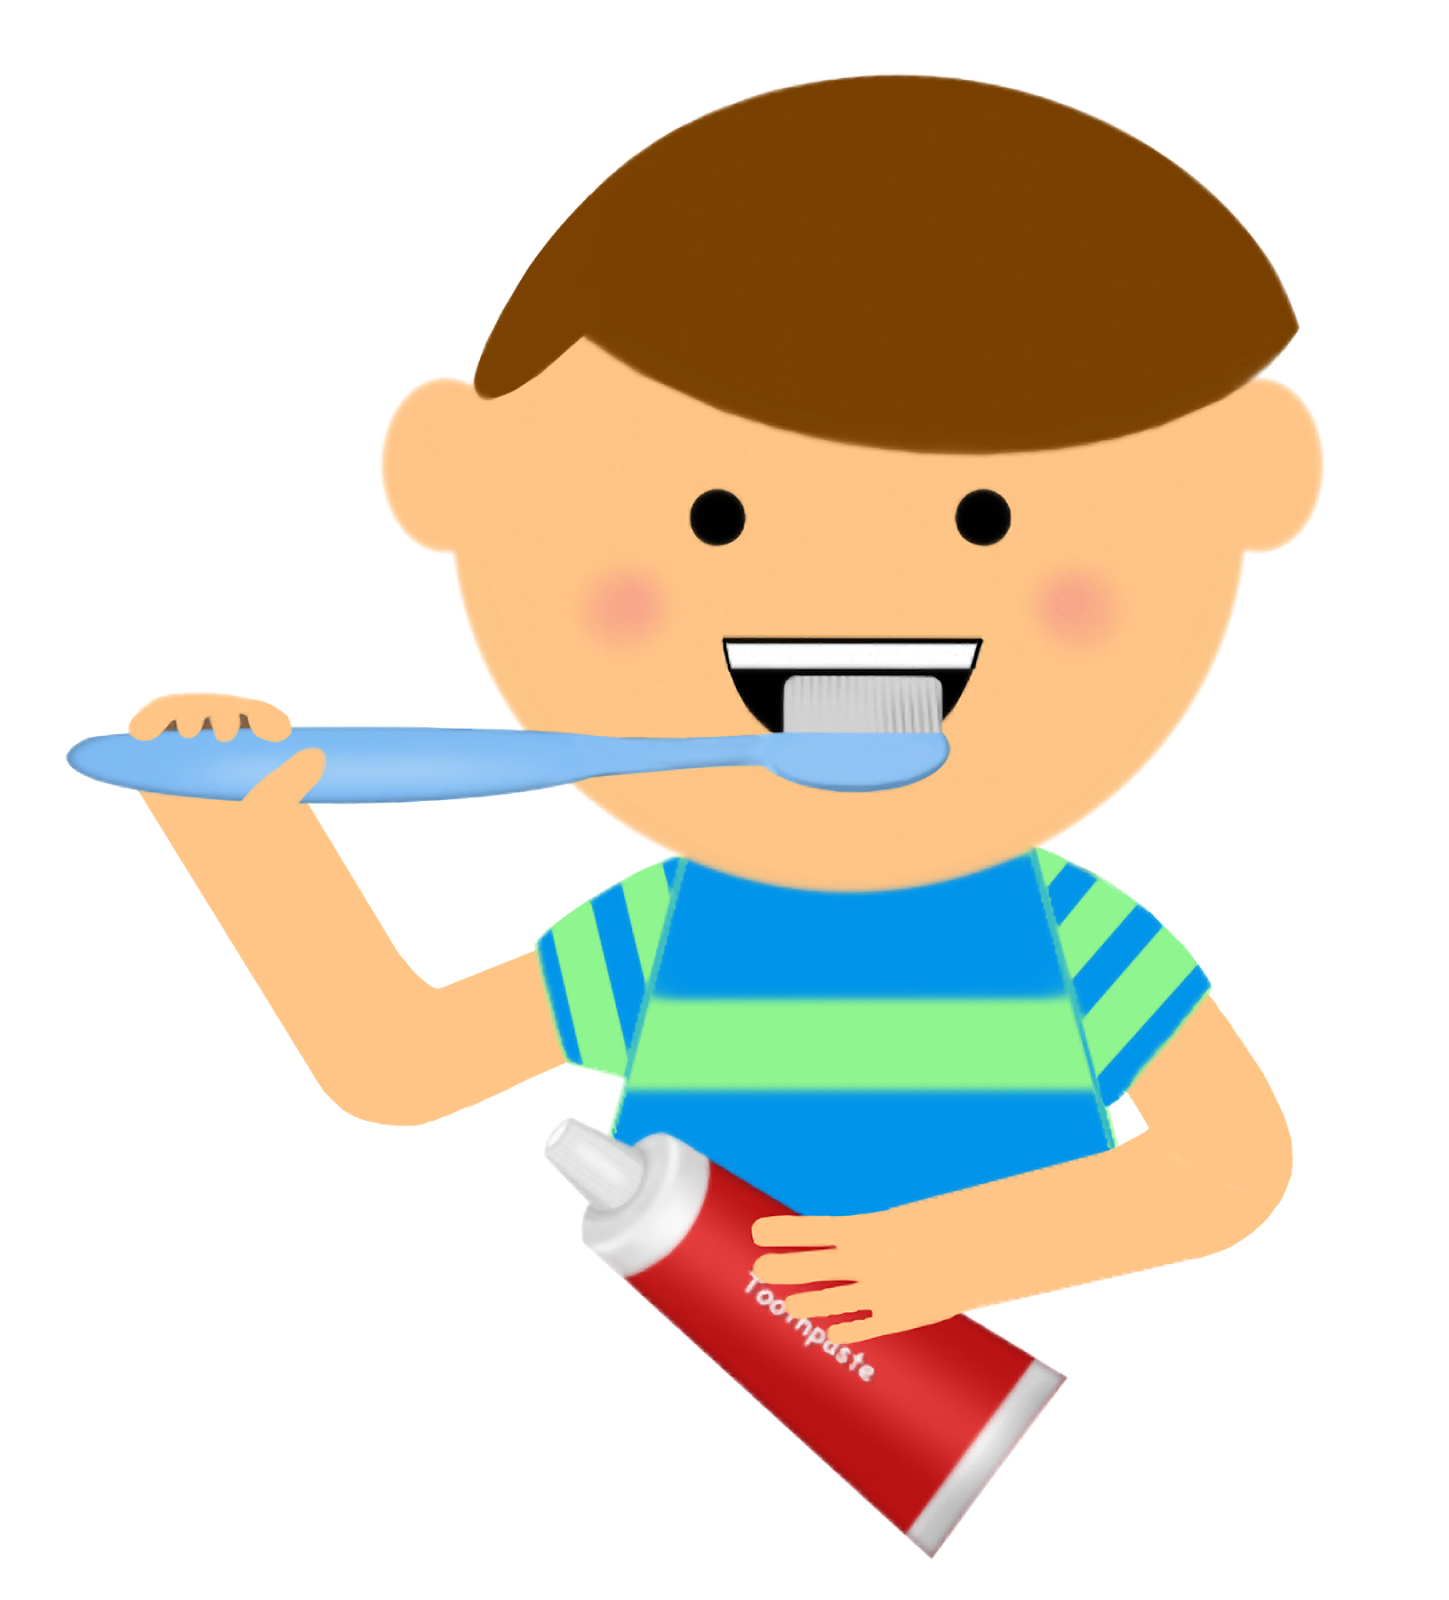 Hair clip art images. Comb clipart boy washing face